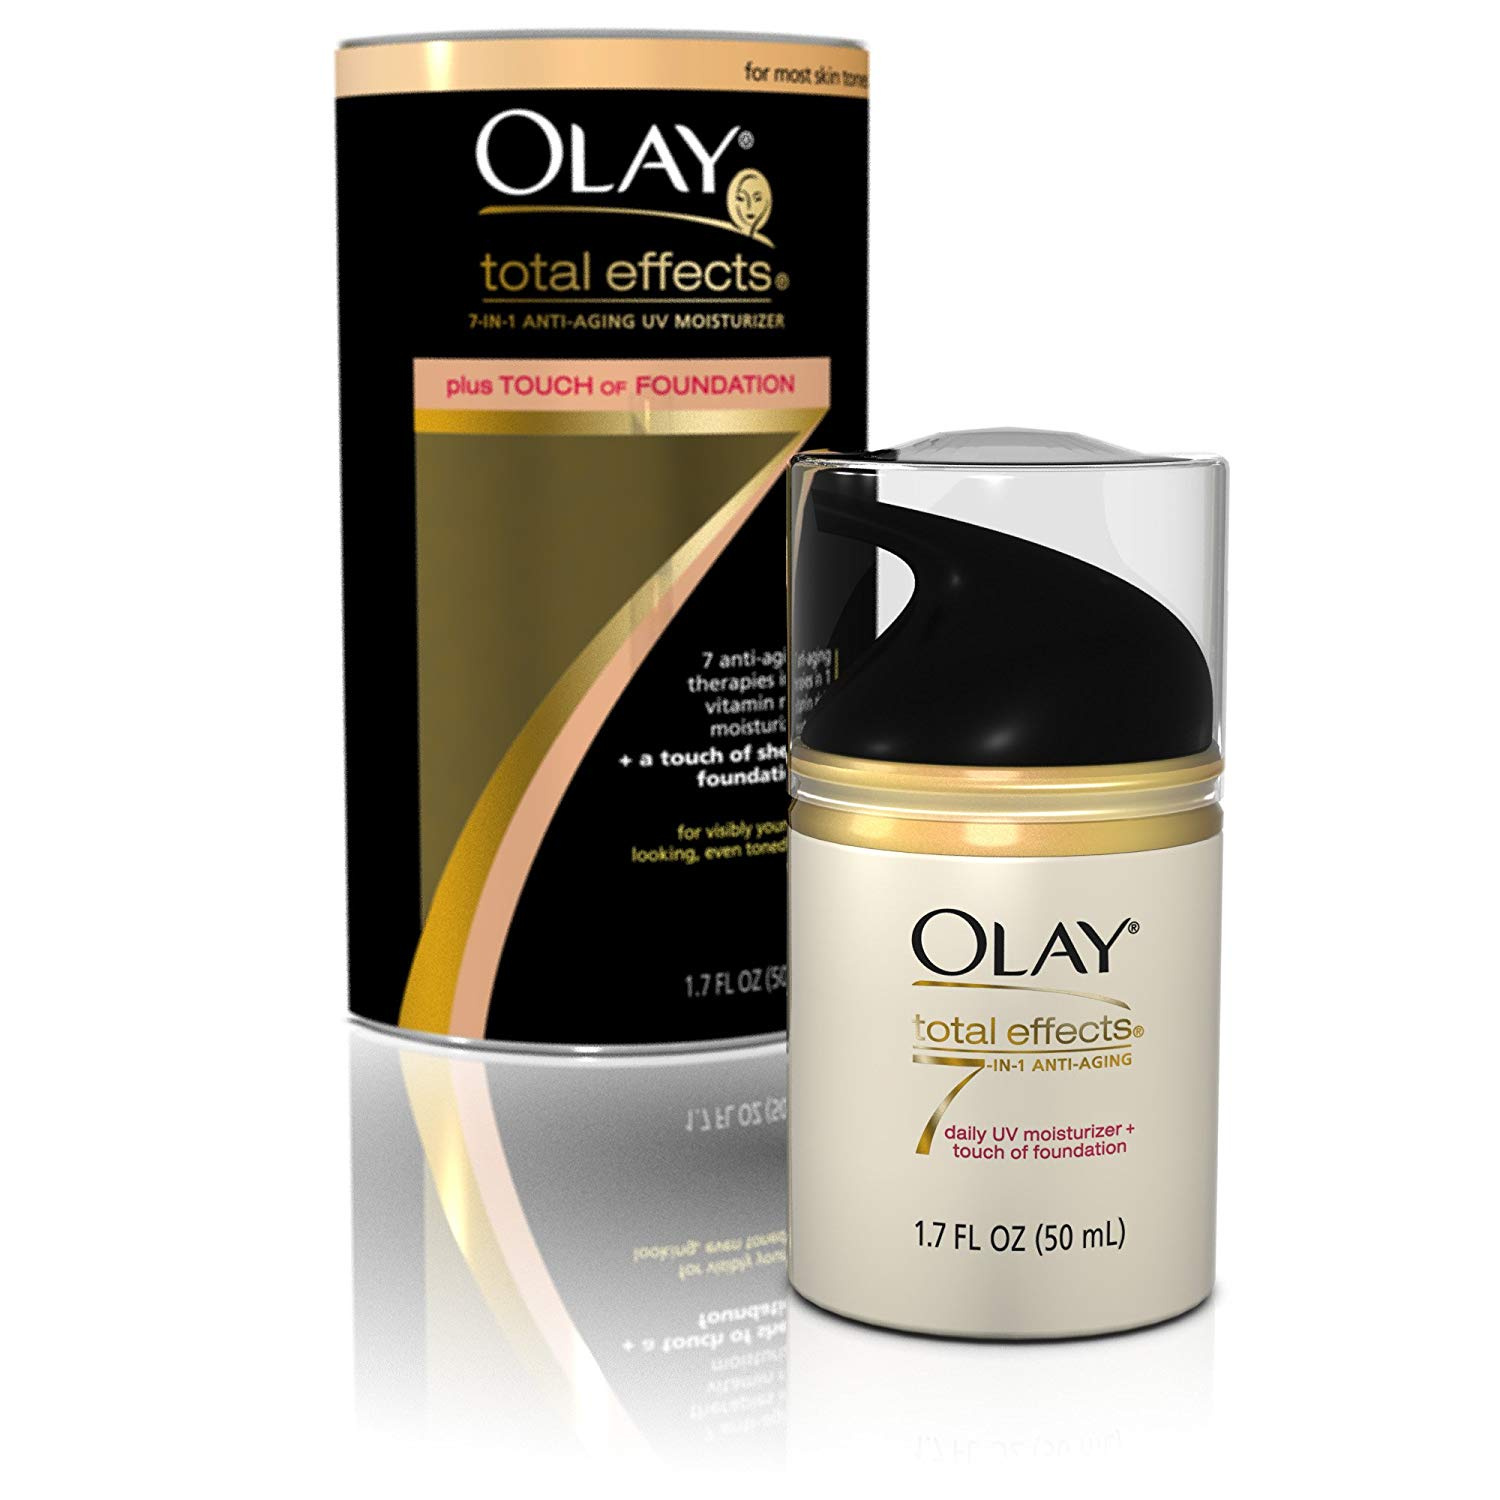 Olay Made In Thailand Beauty Buy Online From Total Effects 7 One Day Cream Touch Of Foundation Spf 15 50gr